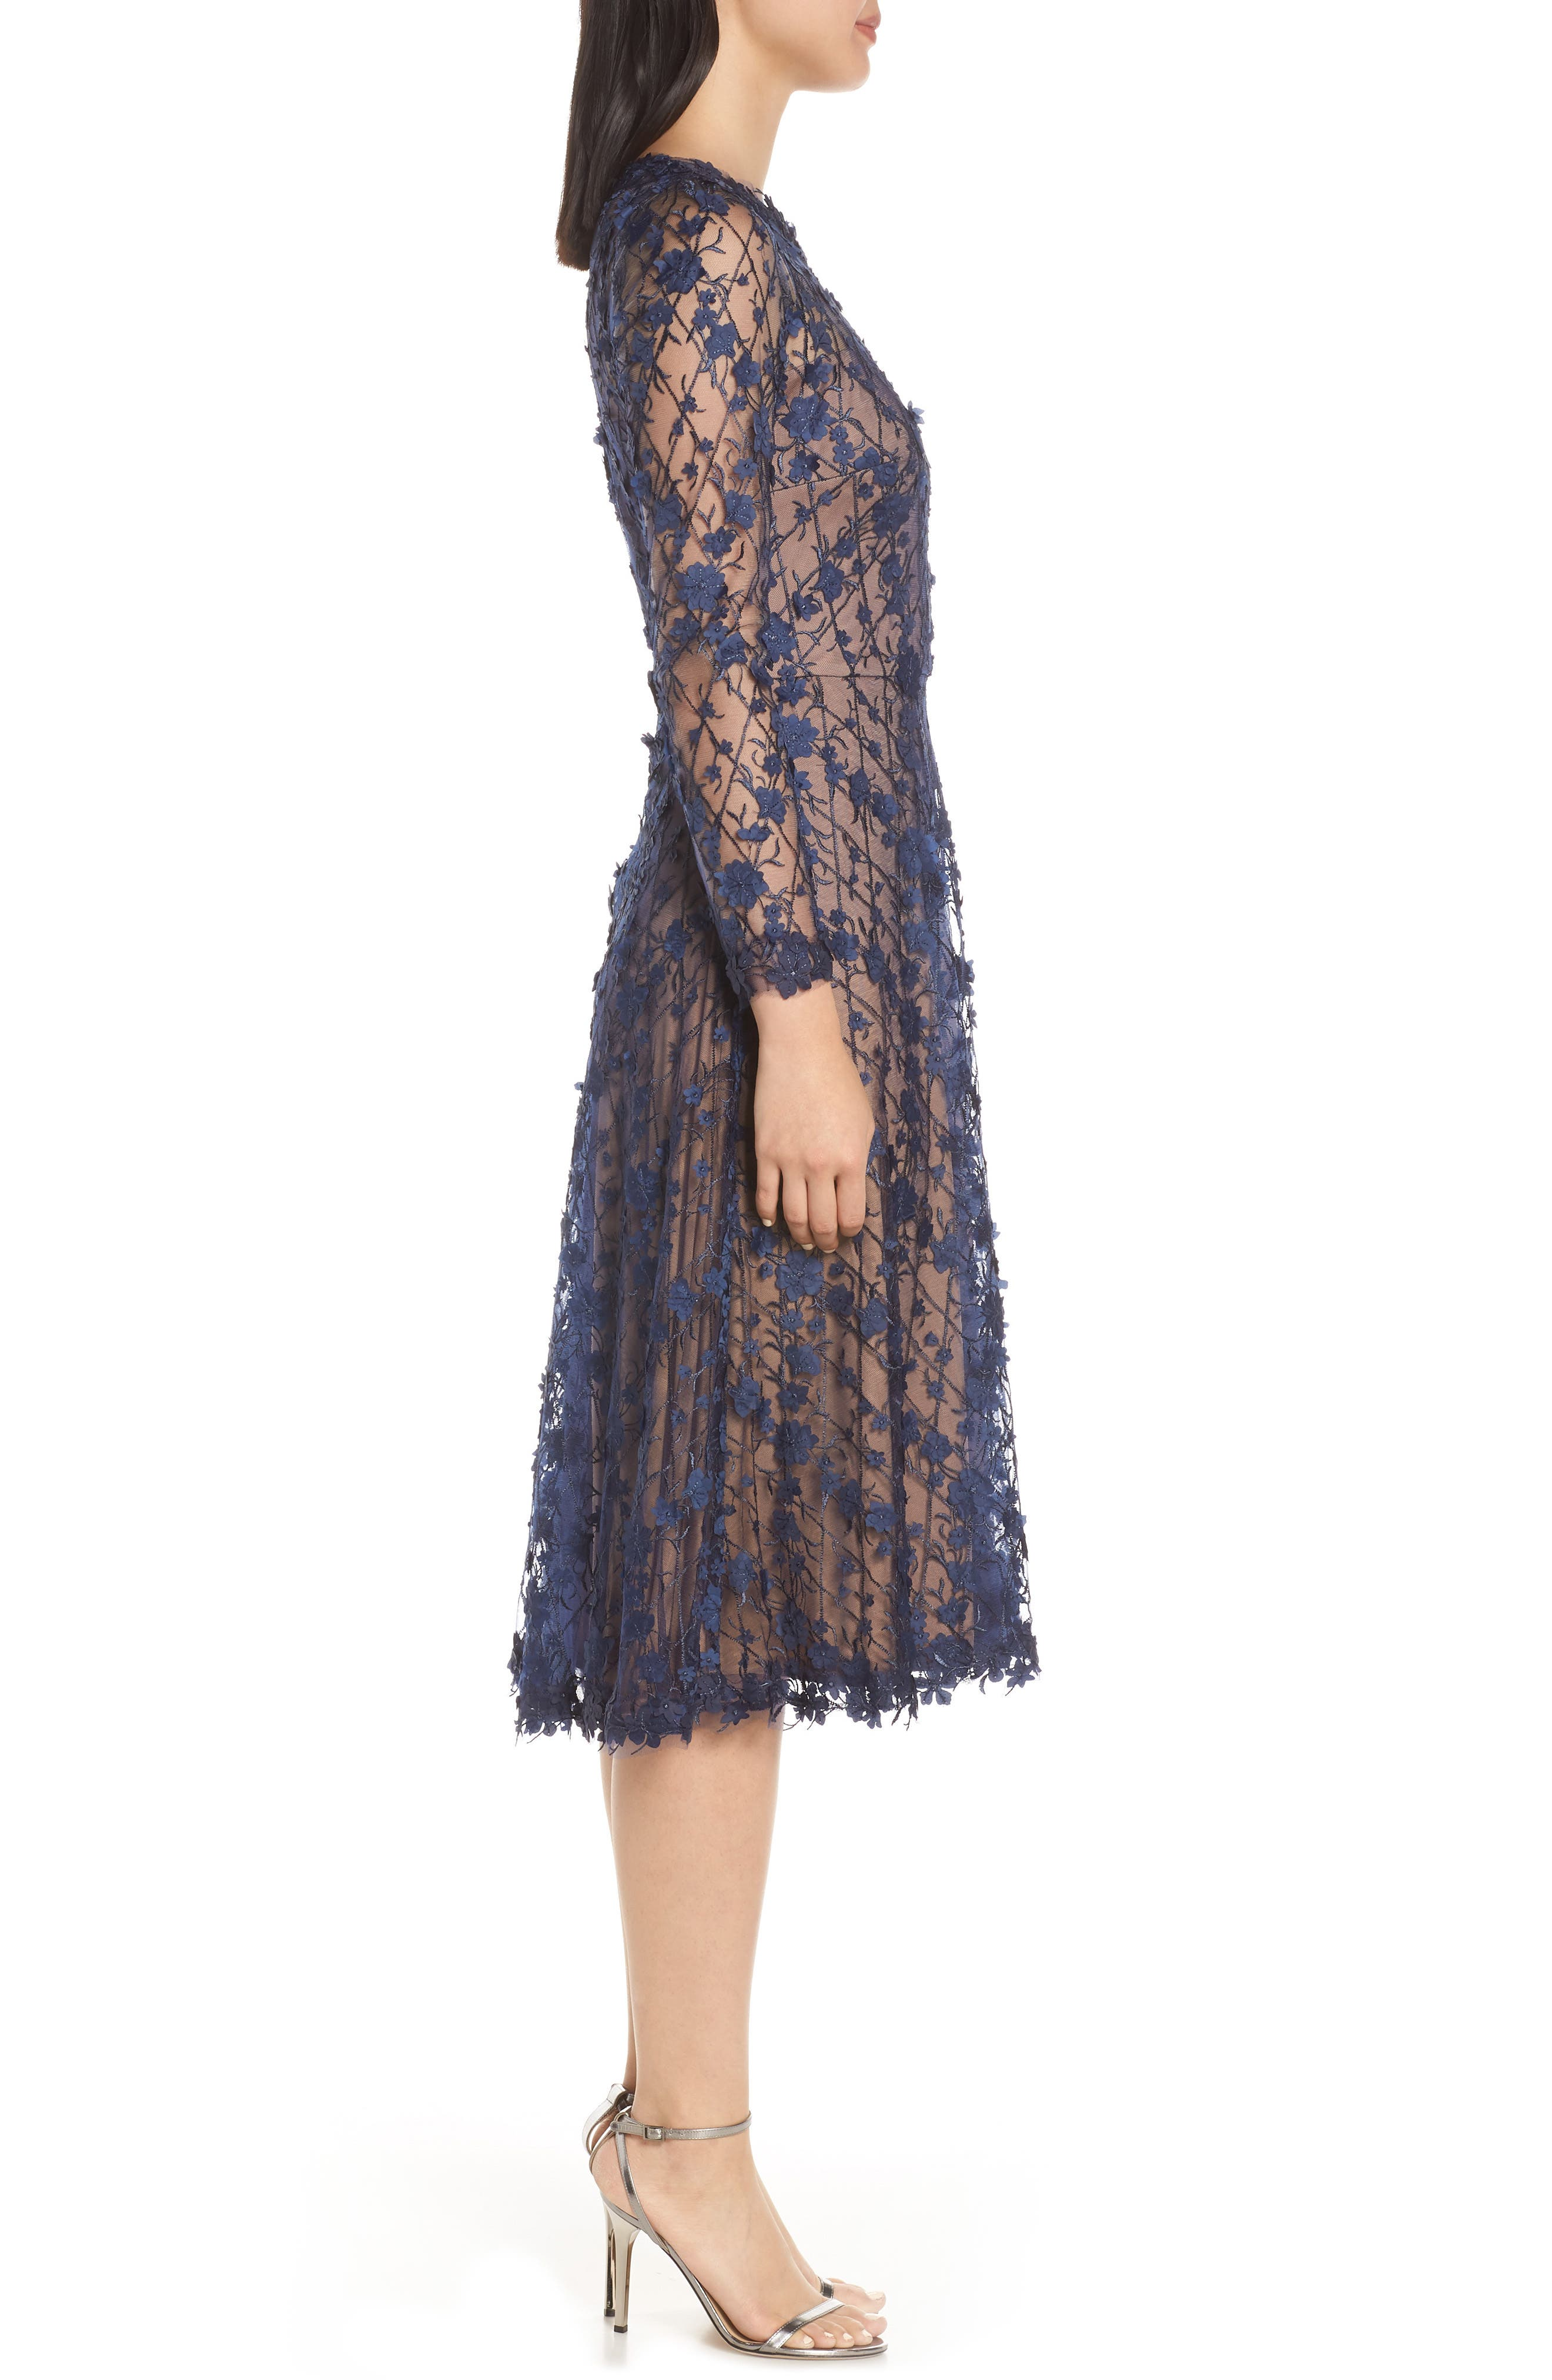 3D Flowers Lace Dress,                             Alternate thumbnail 3, color,                             MIDNIGHT/ NUDE